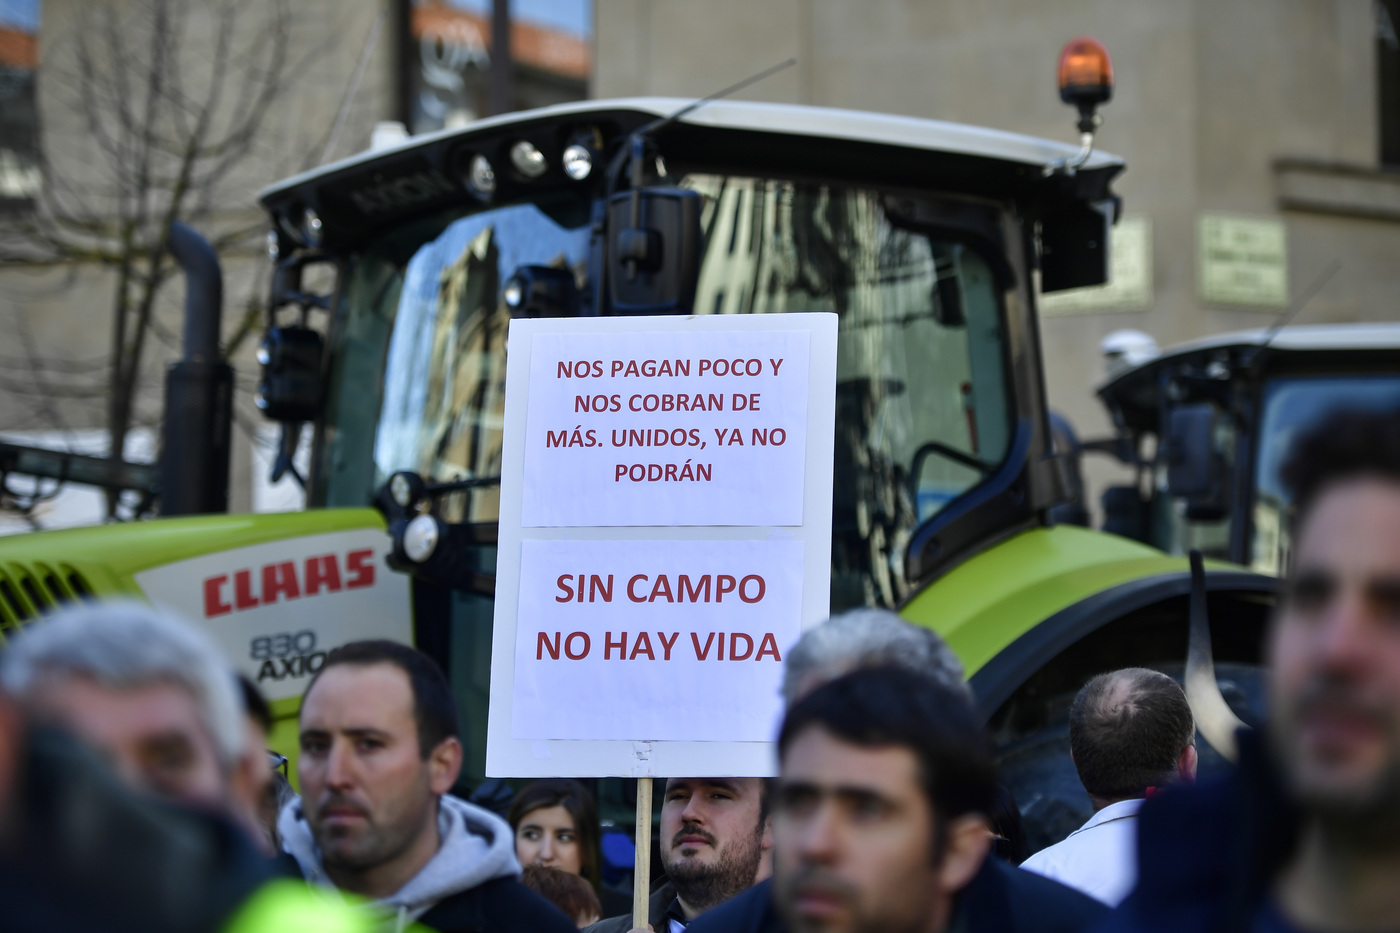 A man holds up a banner reading, ''They pay us little and they charge us more. If we are united they will can no longer. Without fields there is no life'' during a protest in Pamplona, northern Spain, Wednesday, Feb. 19, 2020. Farmers across Spain are taking part in mass protests over what they say are plummeting incomes for agricultural workers. (AP Photo/Alvaro Barrientos)